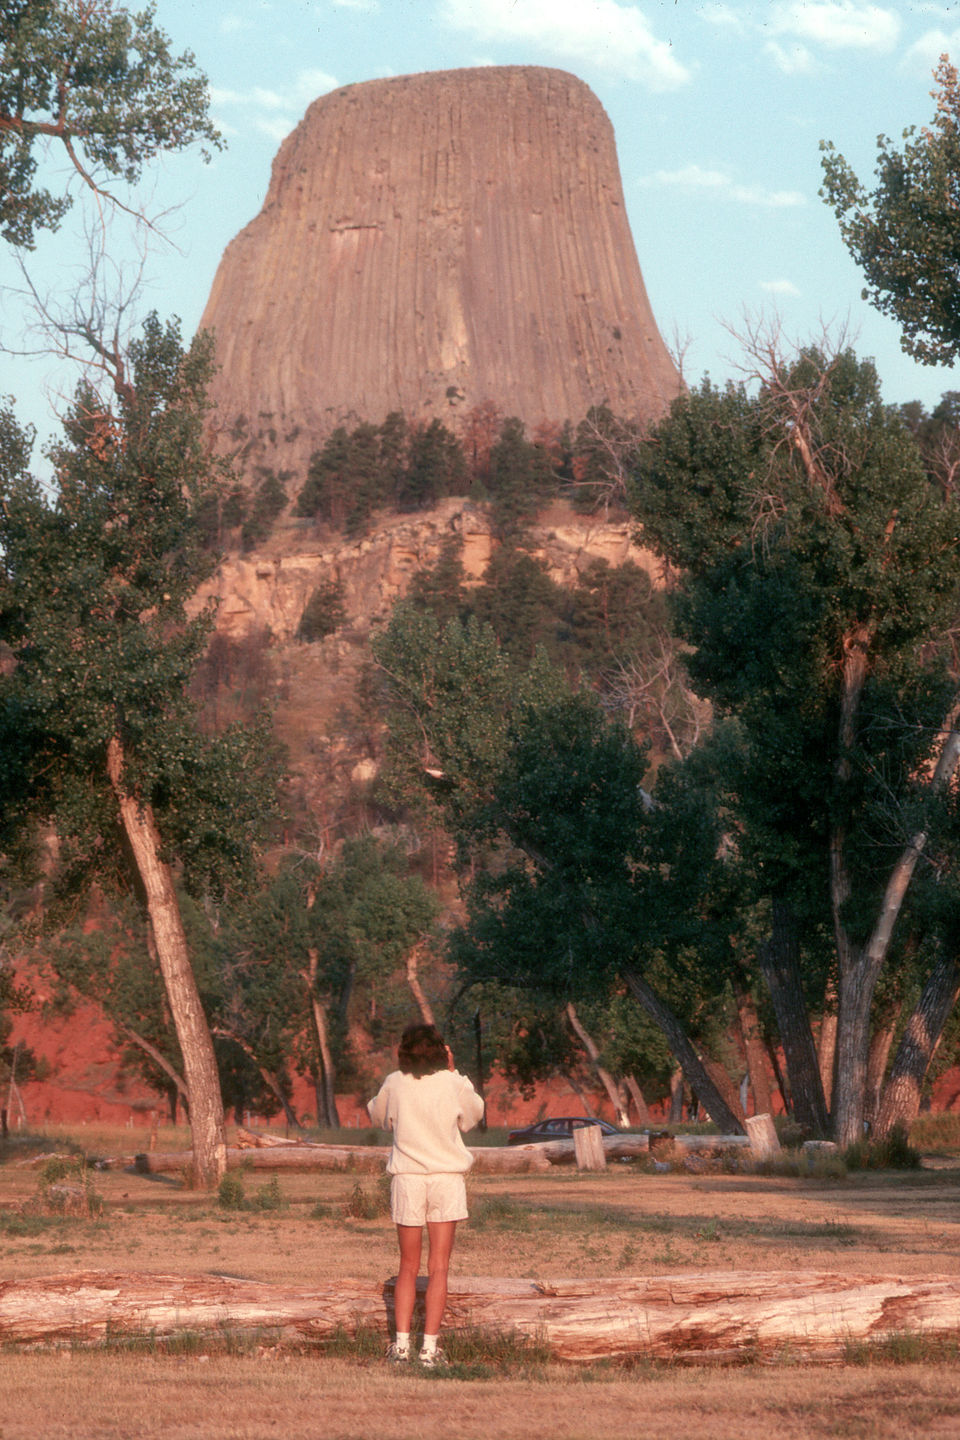 Lolo by Devil's Tower at sunrise